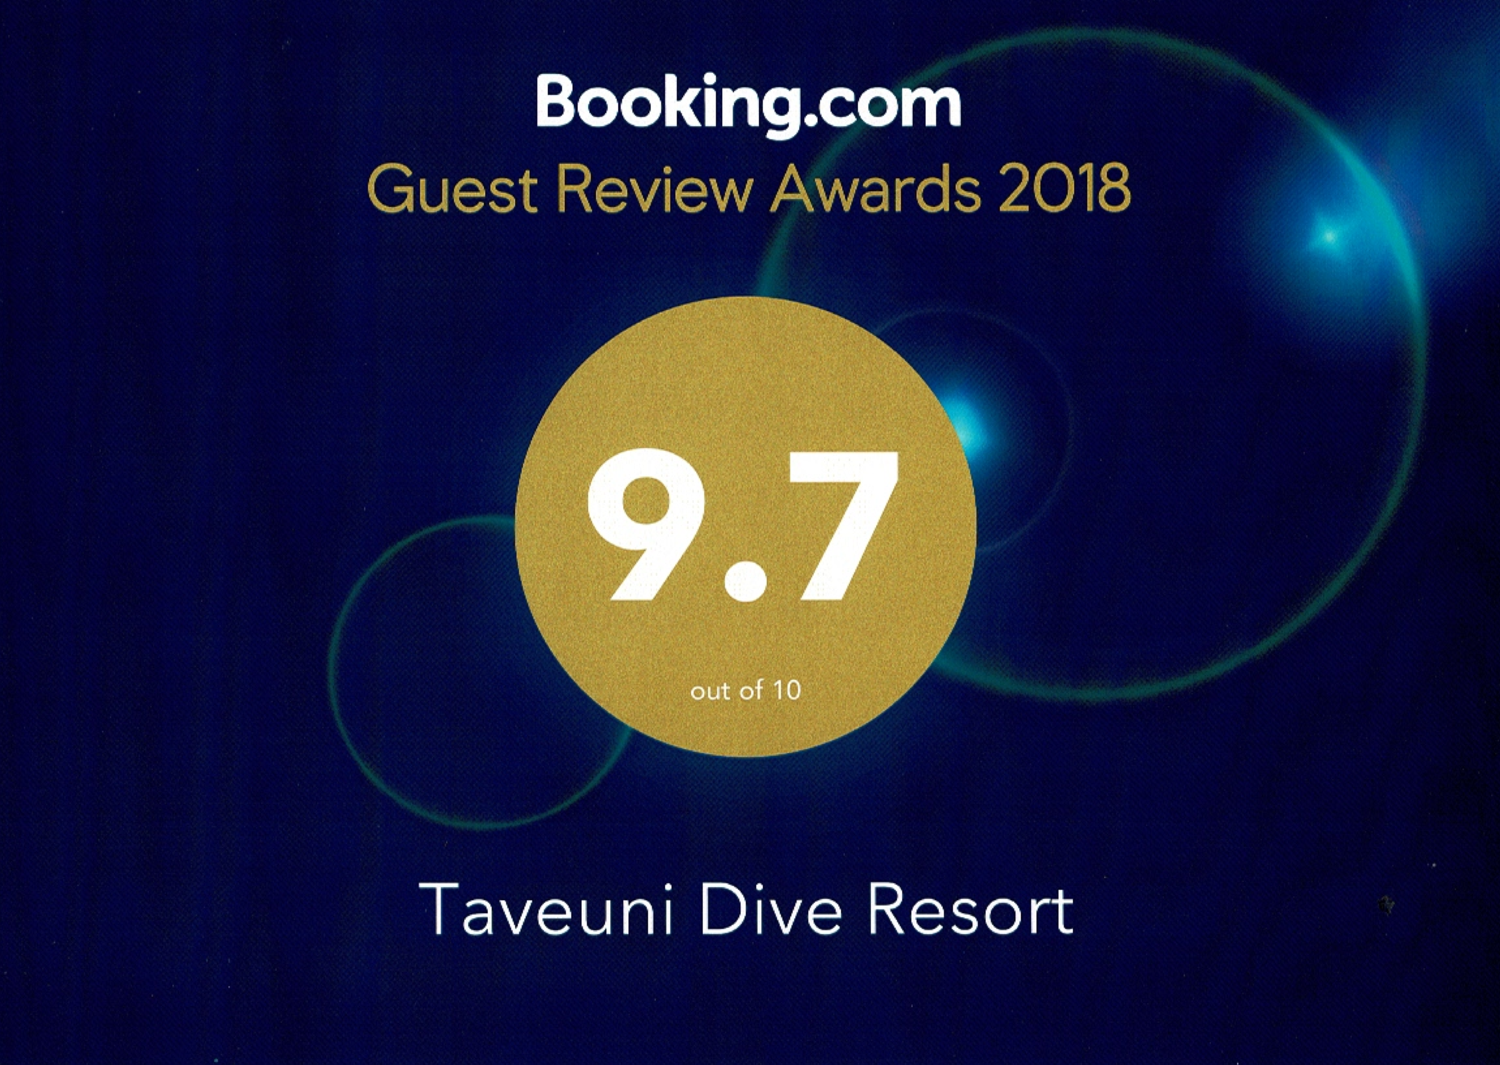 We just received our 2018 Guest Review Reward from Booking.com, and we're really happy!